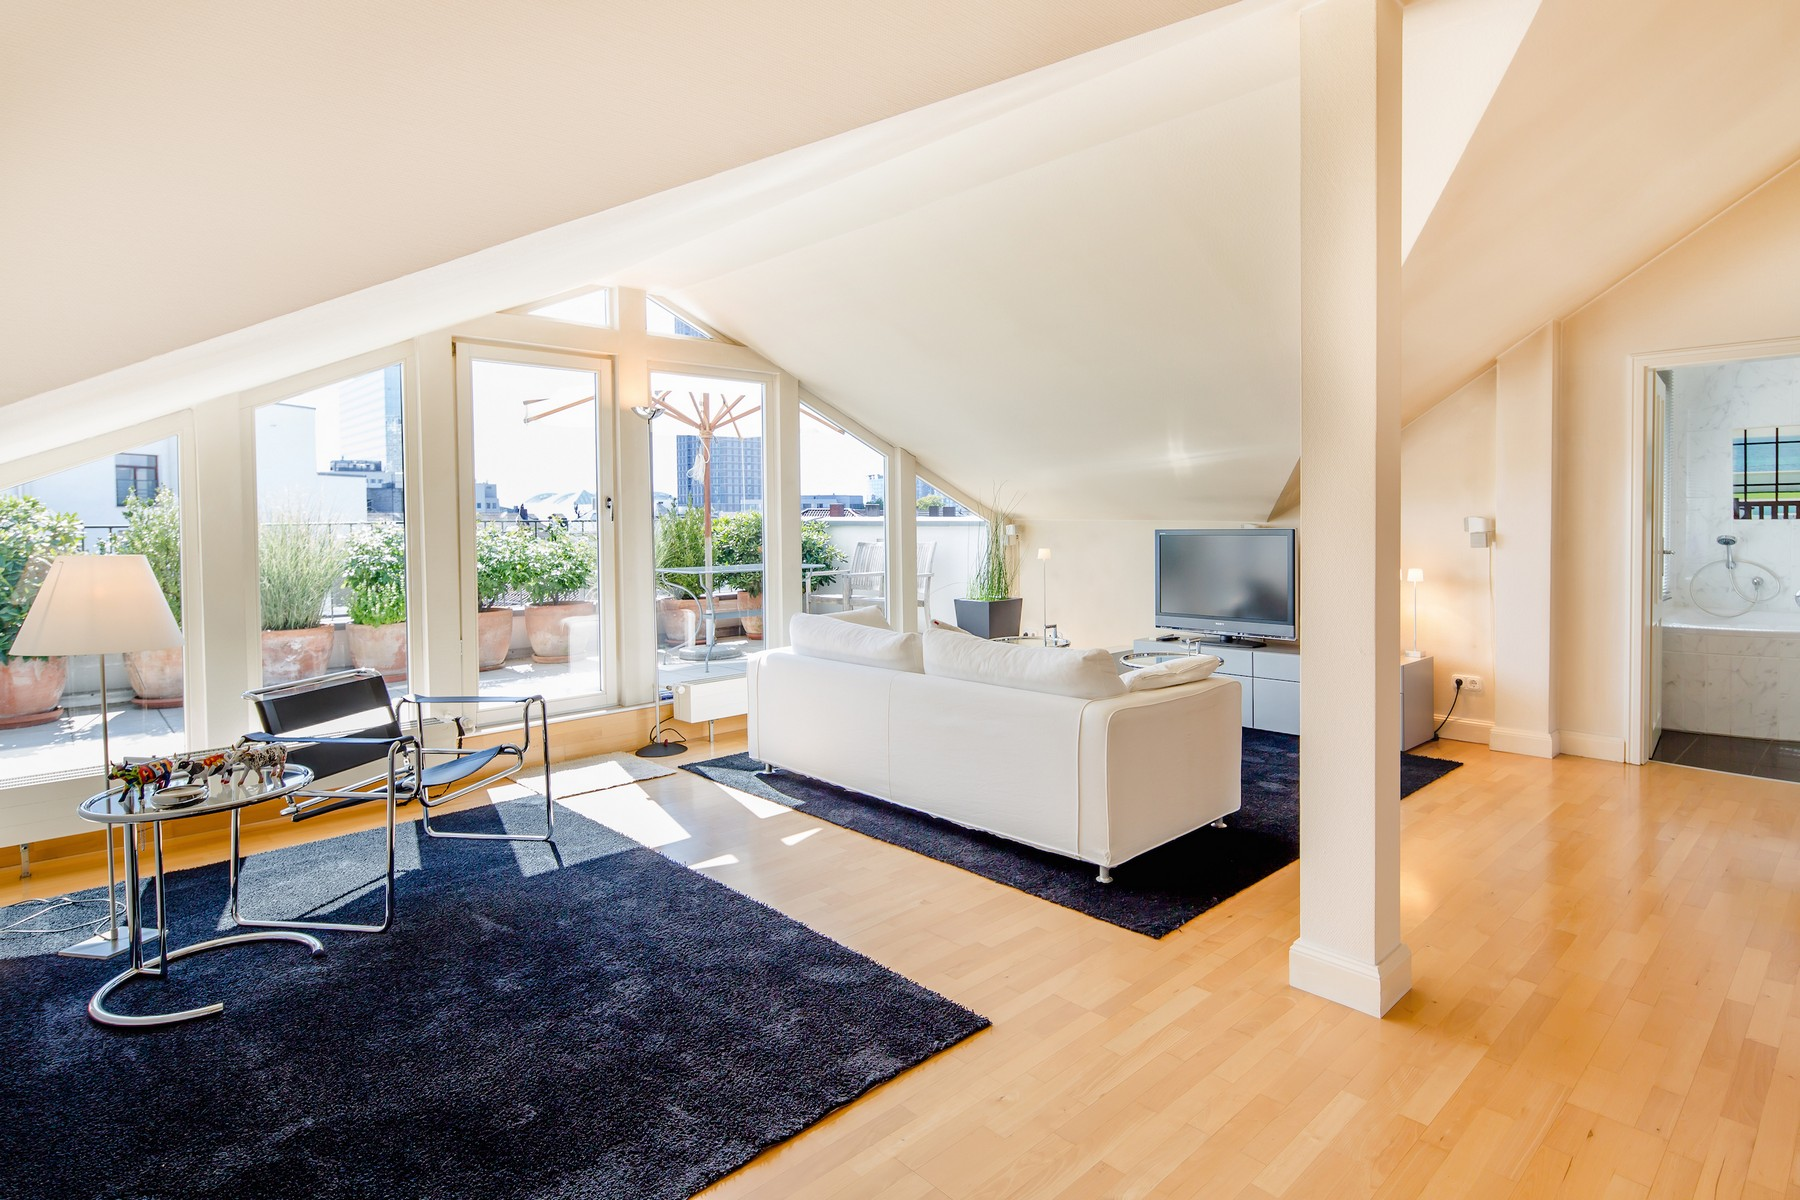 Apartment for Sale at Living in Style in Frankfurt - Westend Frankfurt, Hessen 60323 Germany